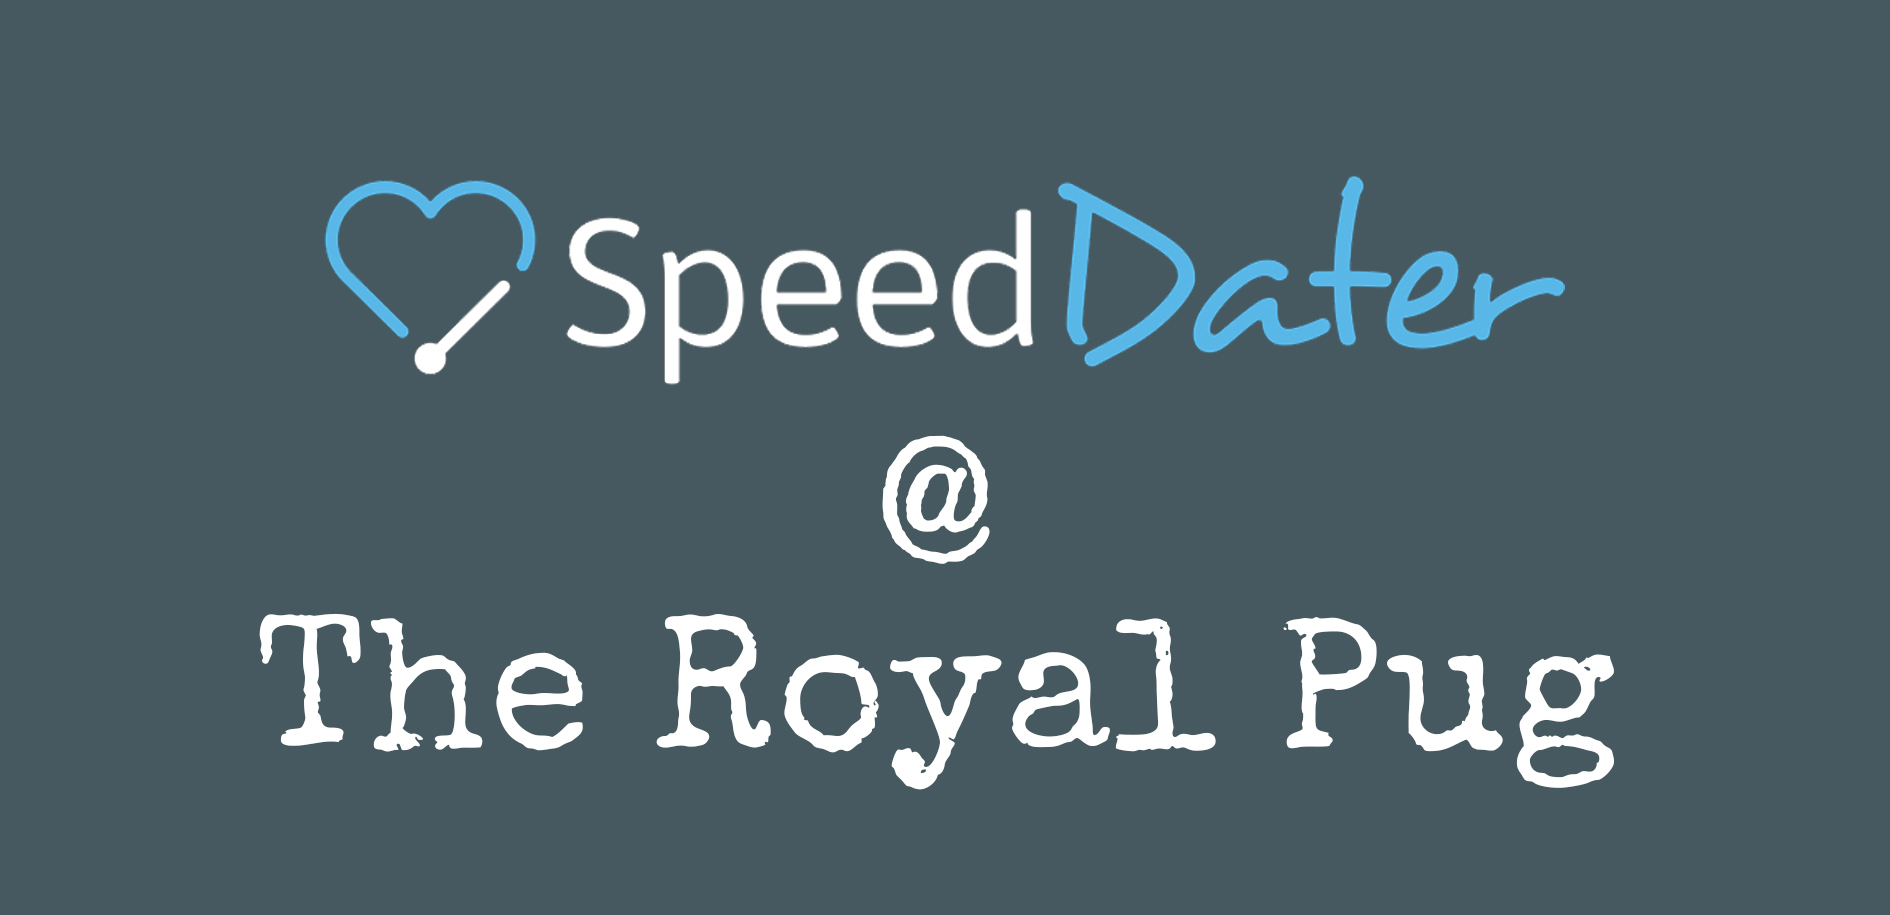 Speed dating kto  by